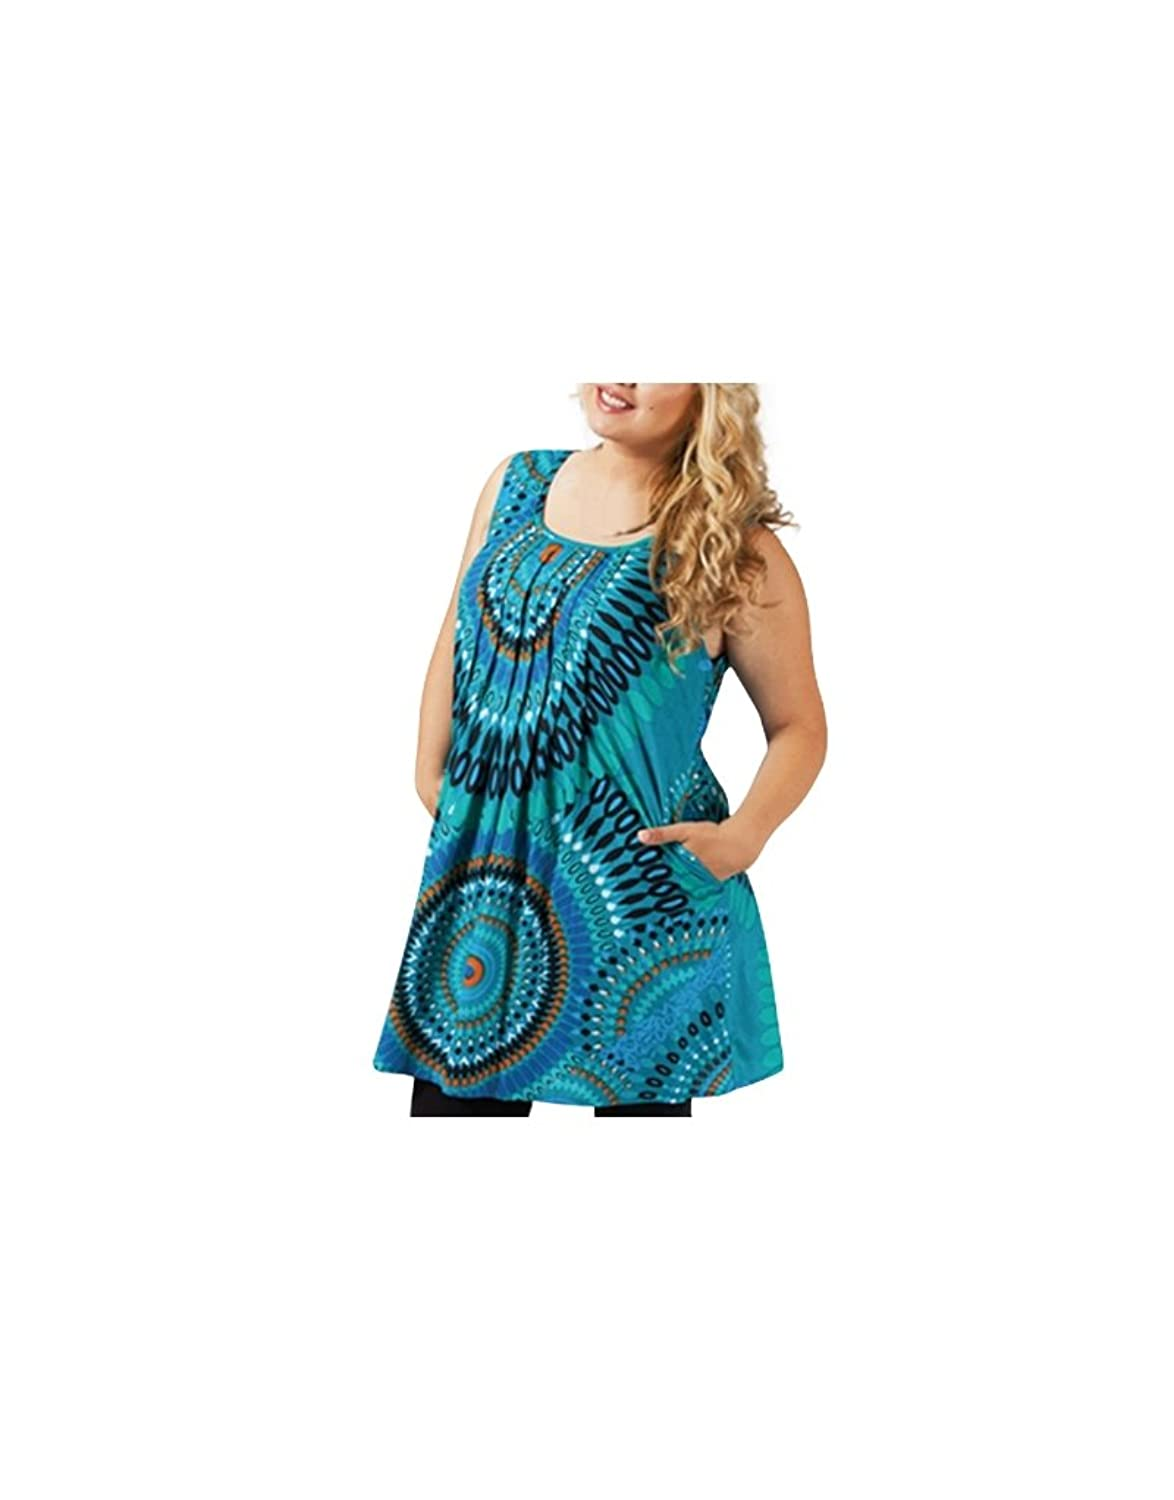 Aller Simplement Plus Size - Large long tunic sizes cotton sleeveless 2 pockets round neck go simply Plus Size TUP203